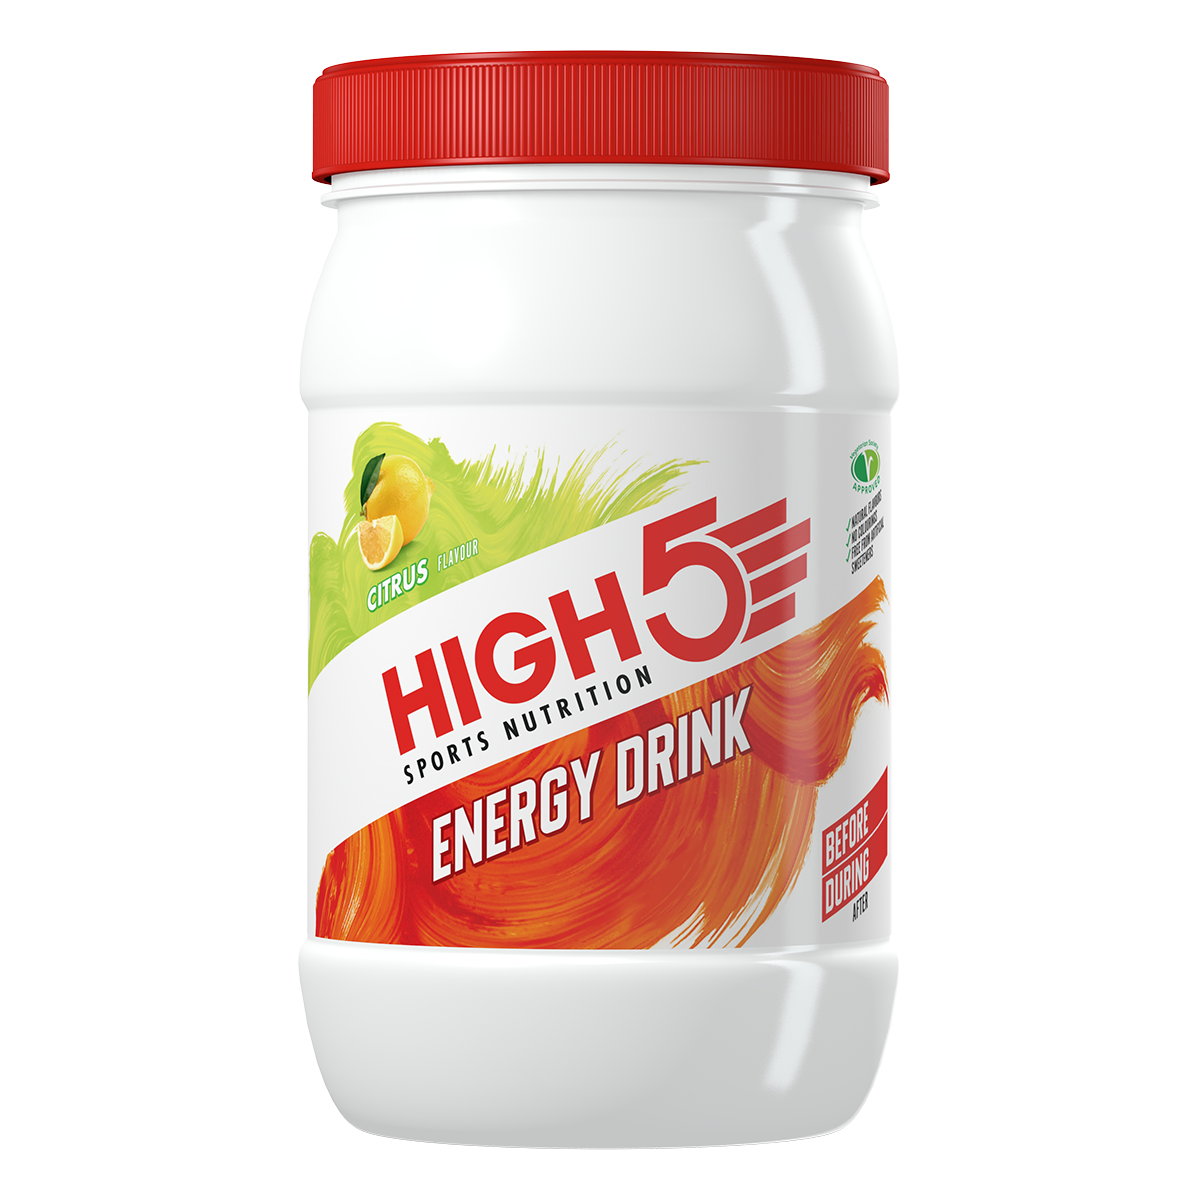 Energy-Drink_Citrus_1000g_Front_RGB_1200x1200.png